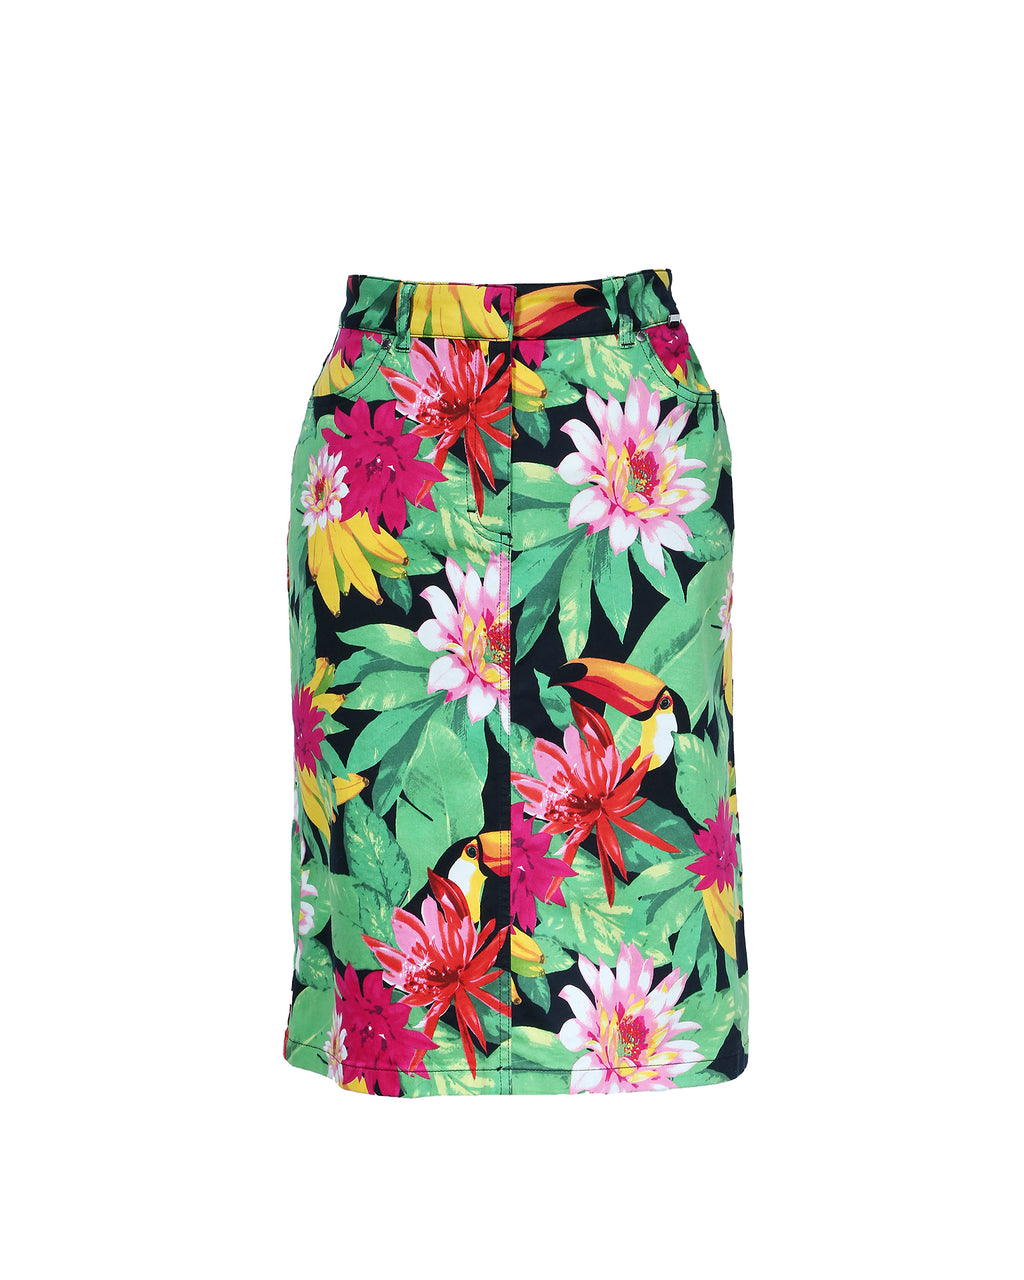 Escada Sport Tropical Print Skirt Size 36 (EU)